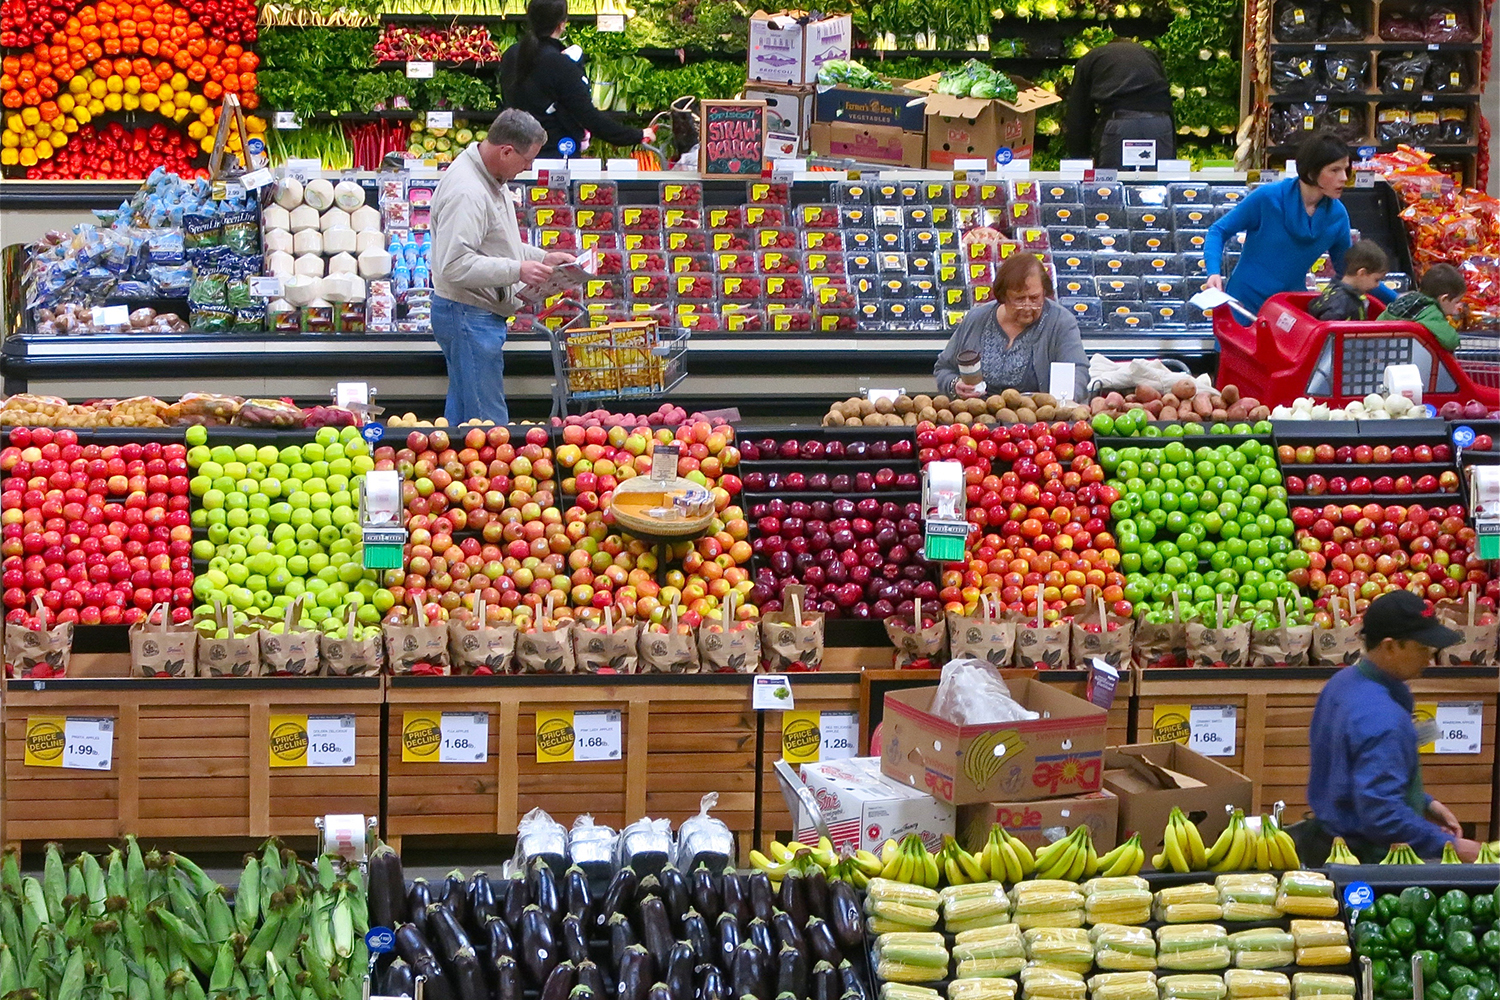 What price do we pay for fresh produce year-round? (Dean Hochman/Creative Commons